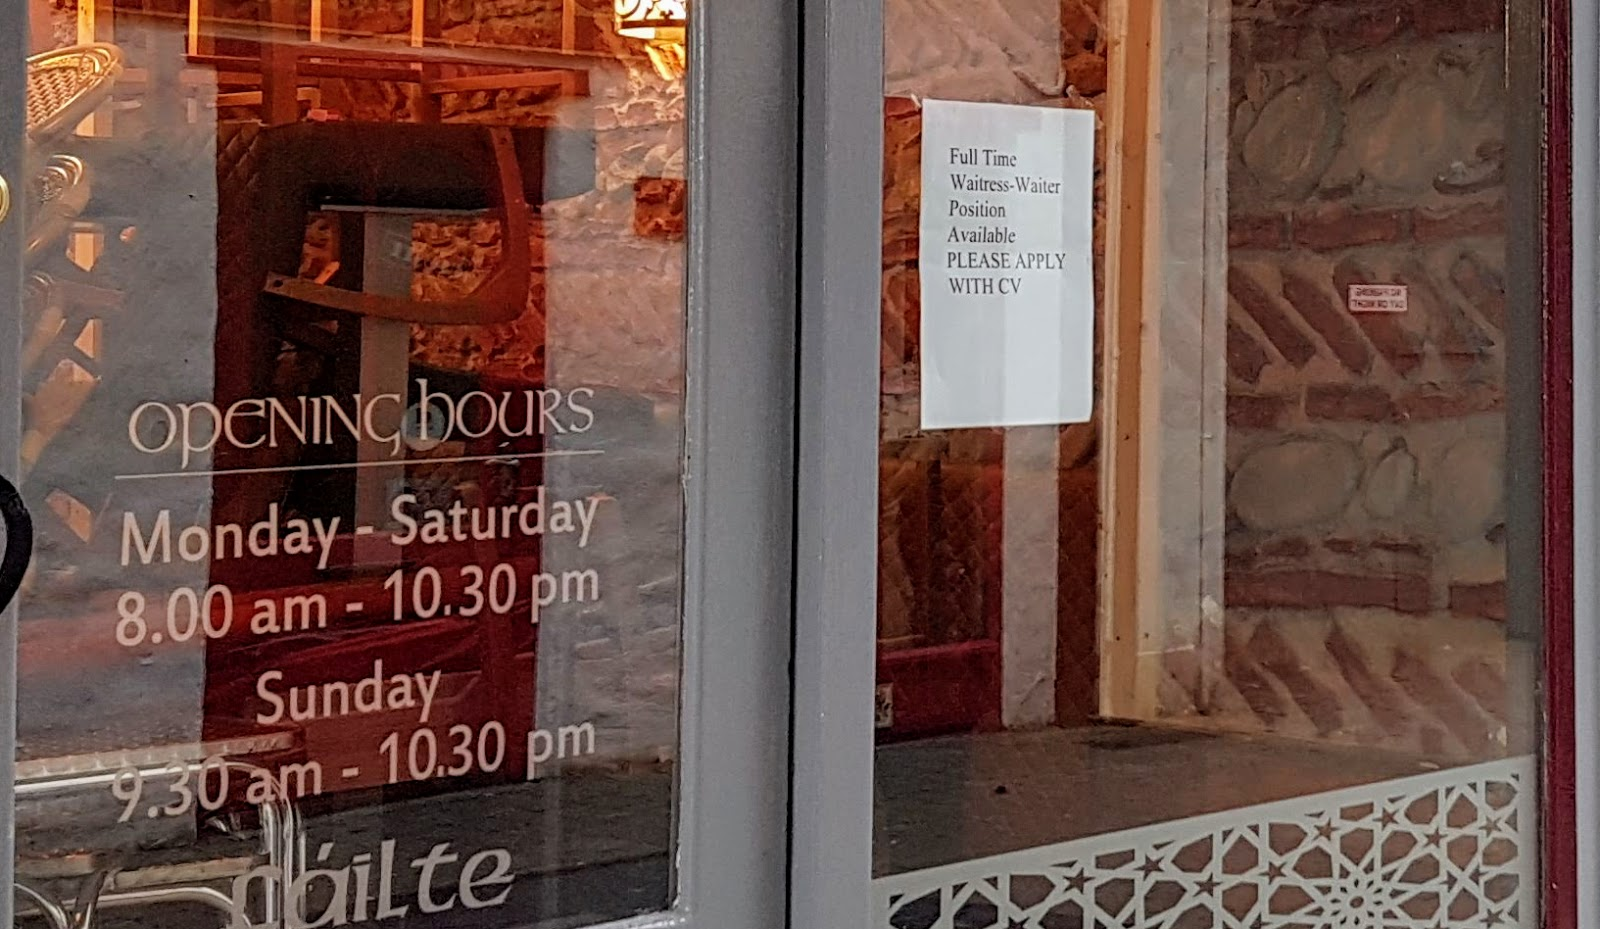 Job advert sign in Galway - along with Anfora restaurant opening hours and the word Fáilte in Irish script writing